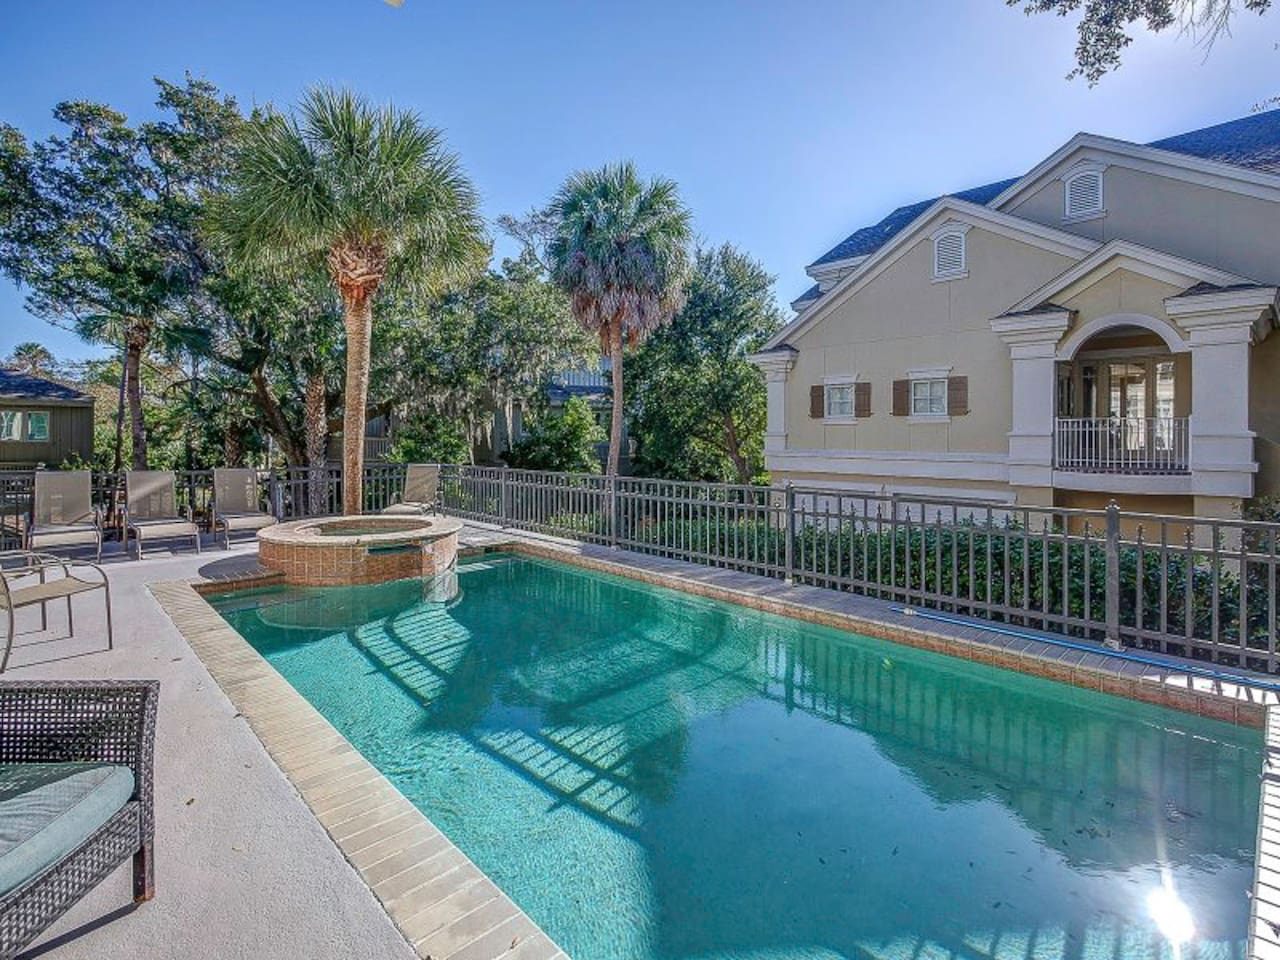 Private pool and hot tub can be heated for an additional cost. Pool is 12x24 & you can see the pool from the living, dining and kitchen of the home.